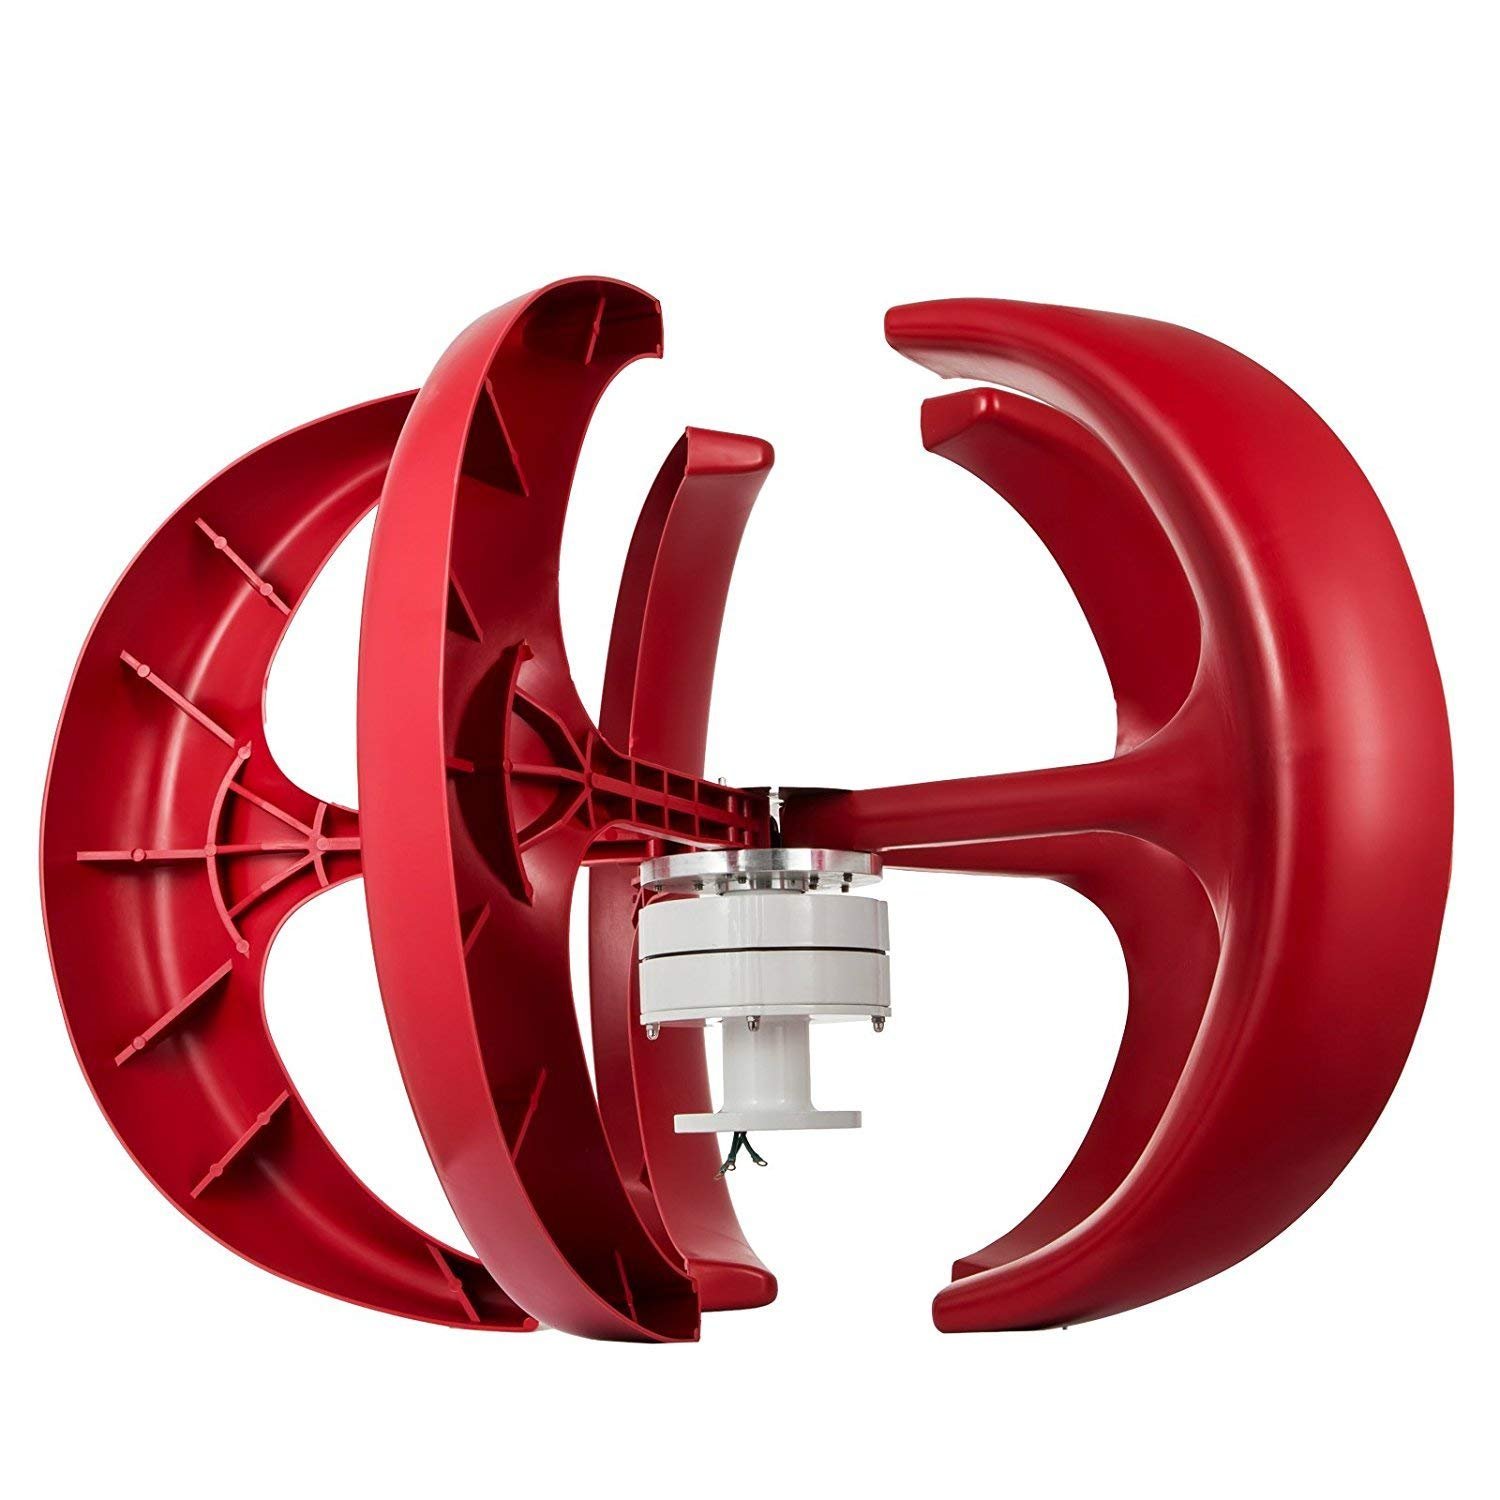 VEVOR Wind Turbine 400W 12V Wind Turbine Generator Red Lantern Vertical Wind Generator 5 Leaves Wind Turbine Kit with Controller No Pole (400W 12V)